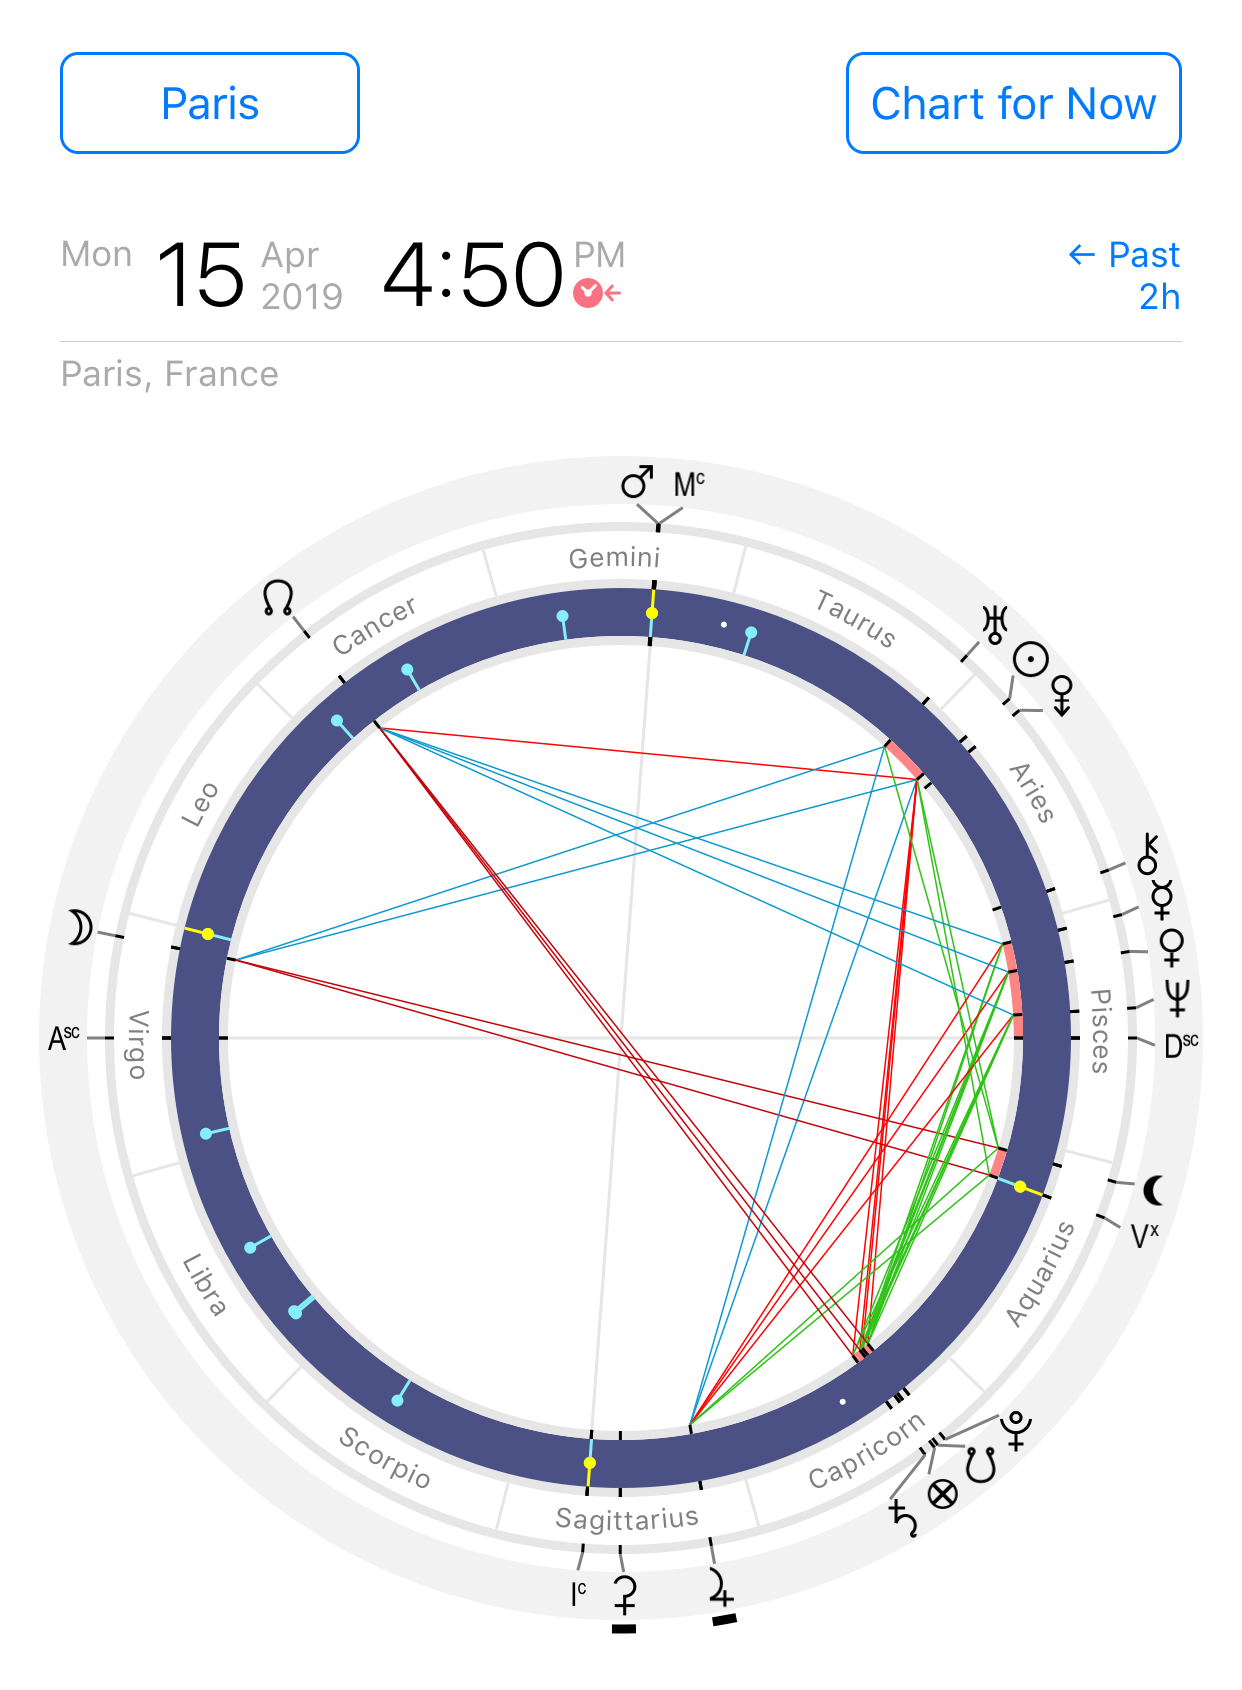 Astrological chart of Notre-Dame Cathedral fire of 15 April 2019, 18:50, two hours before fire reported